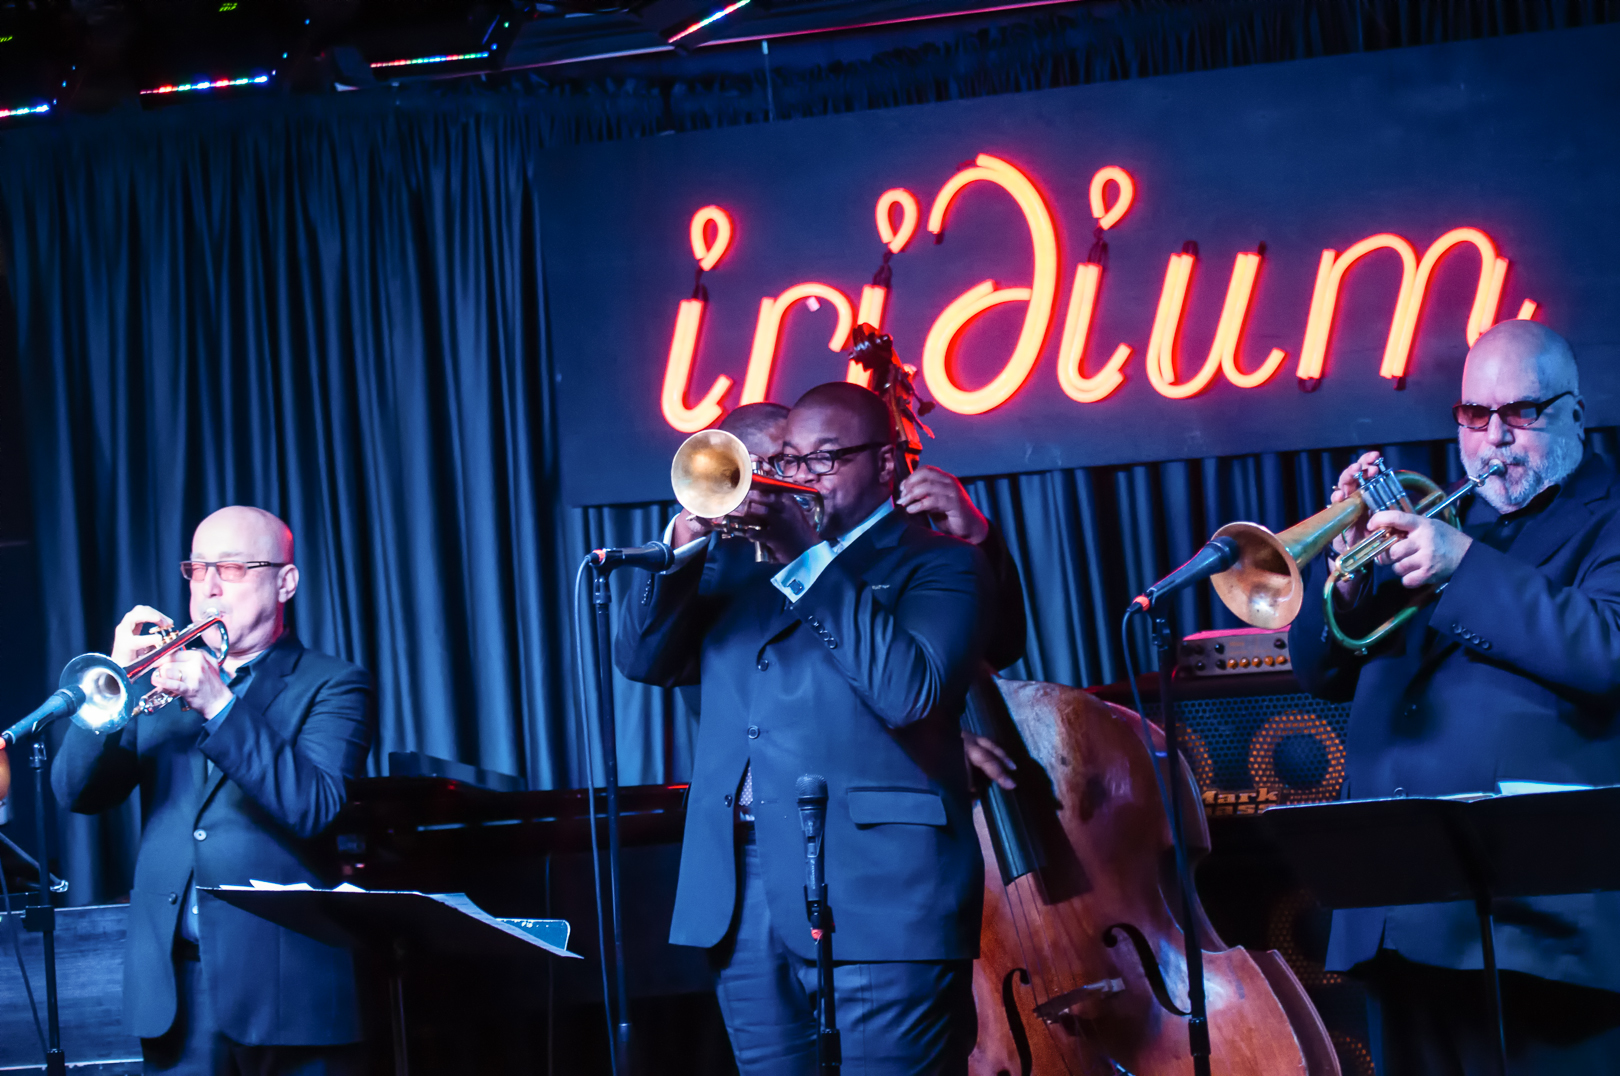 Brian Lynch, Jeremy Pelt and Randy Brecker with the Lords of Trumpet Play Dizzy Gillespie at the Iridium Jazz Club